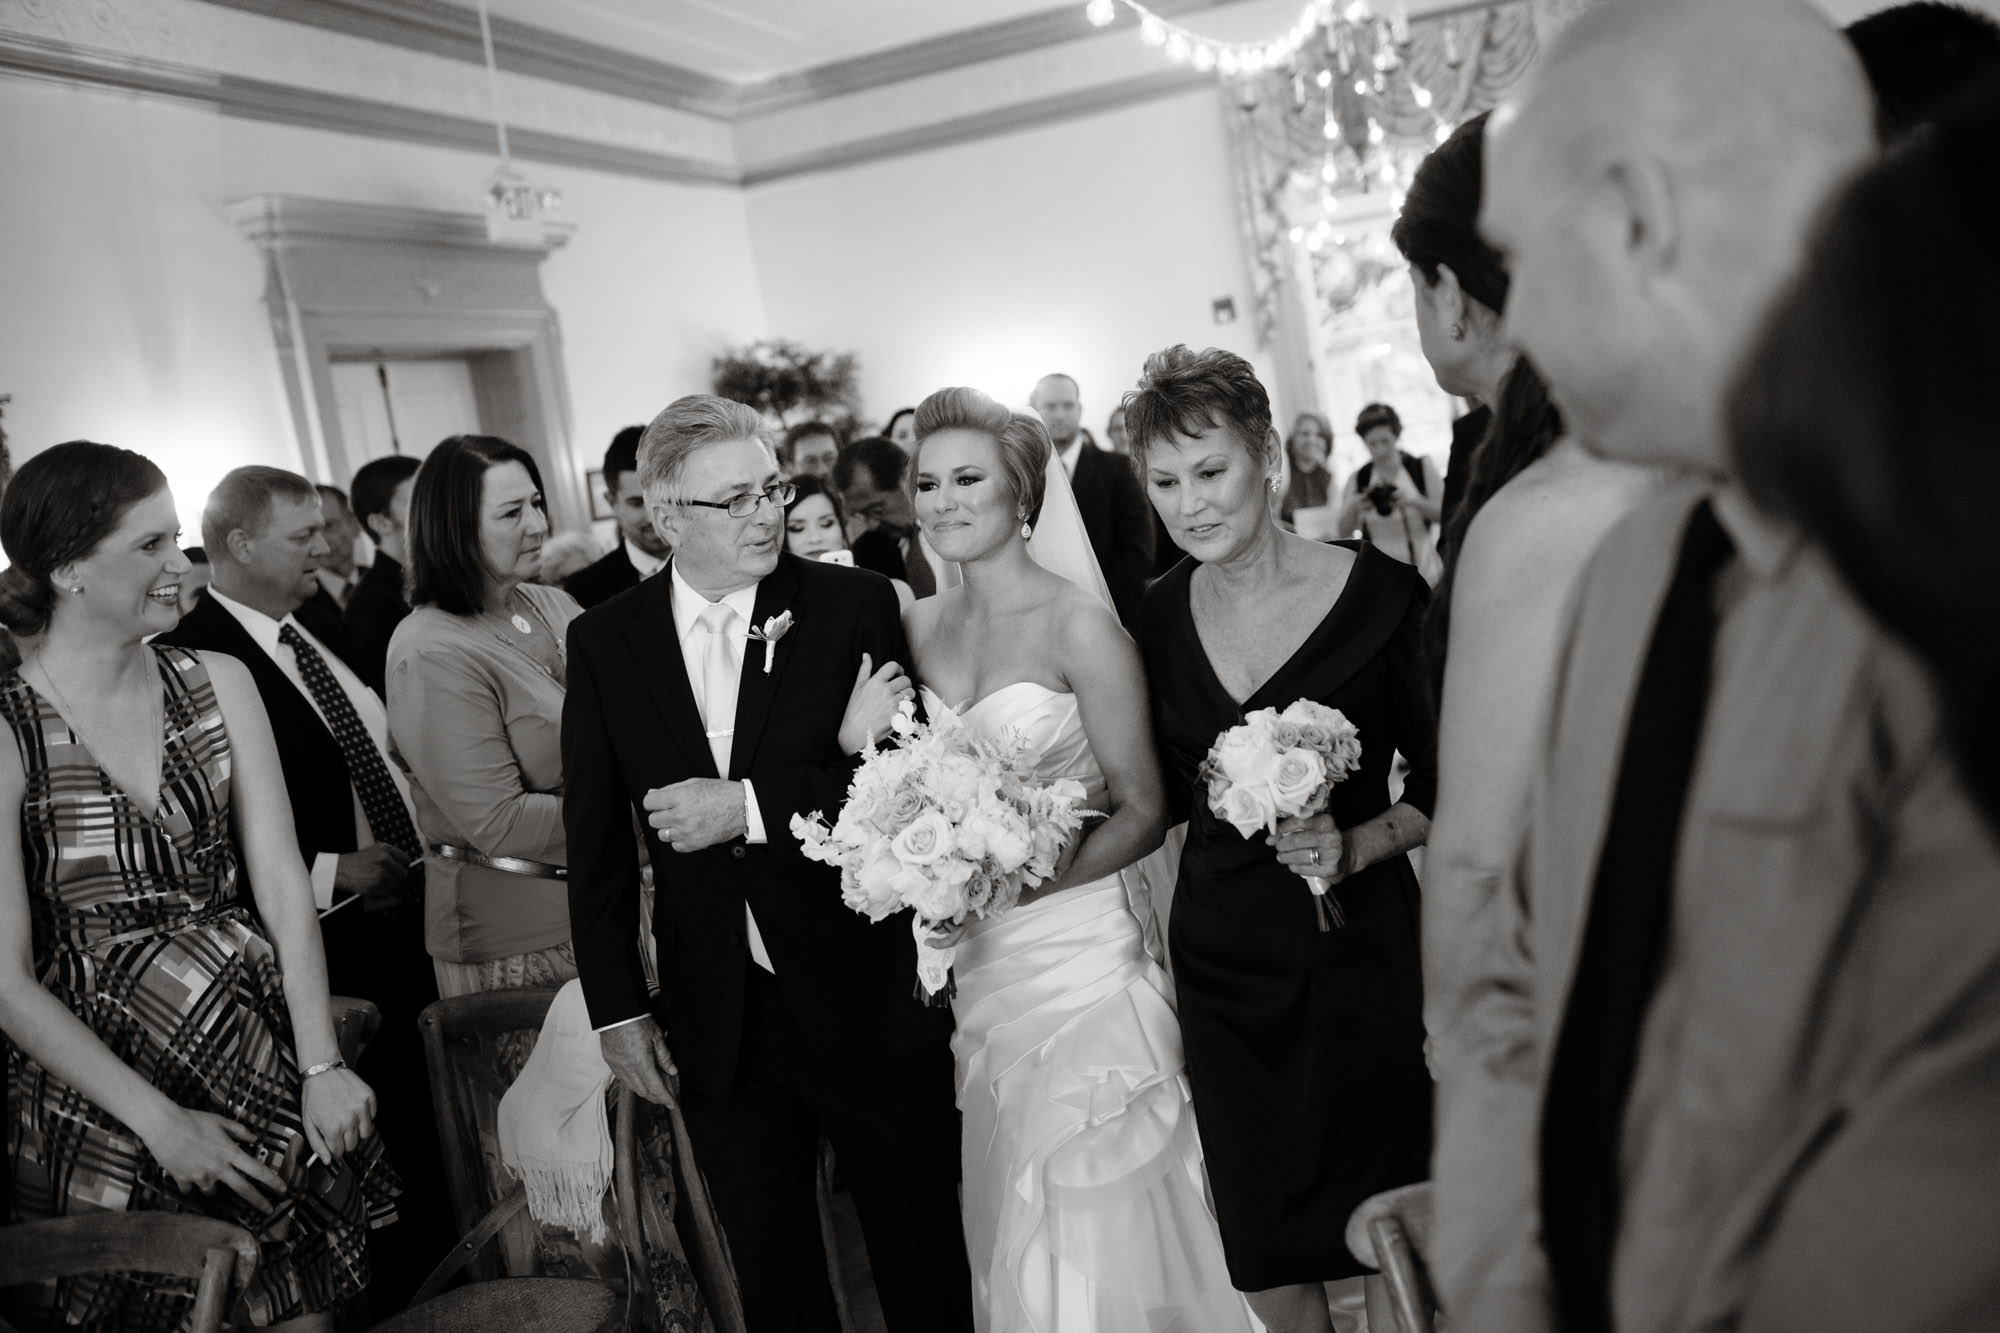 The bride is escorted down the aisle by her parents during the wedding ceremony at Oxon Hill Manor.